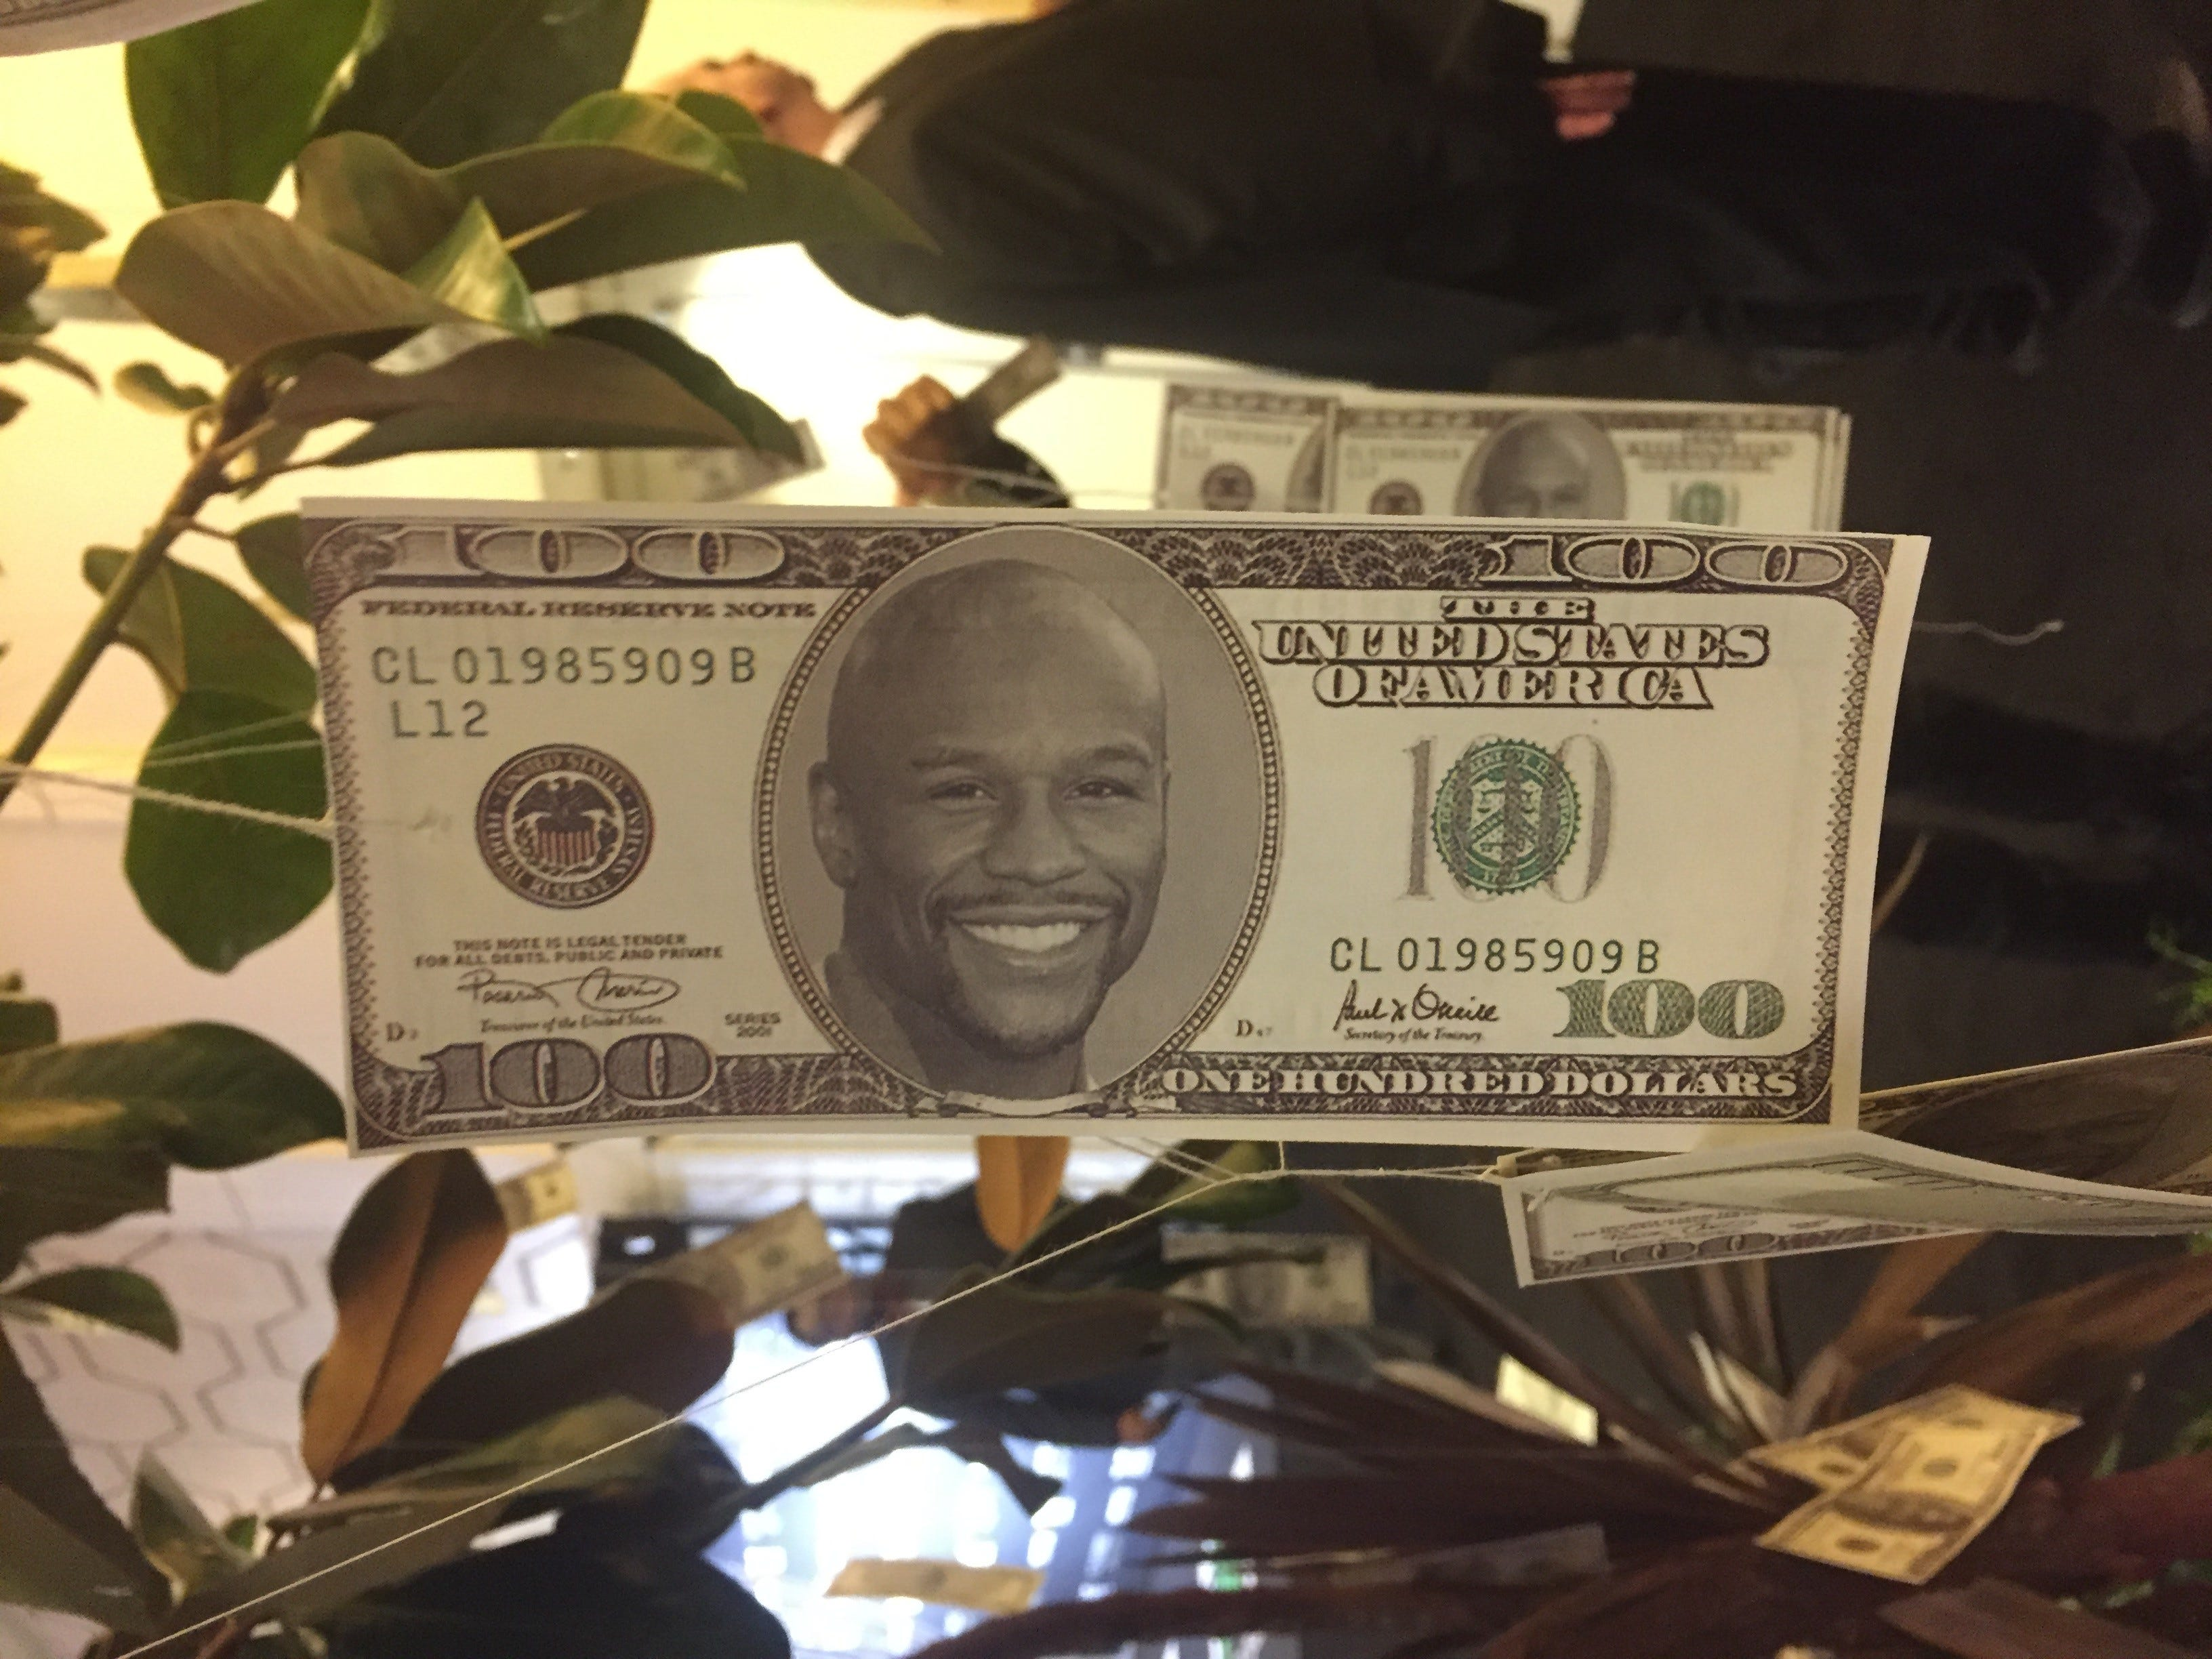 Floyd Mayweather's 40th birthday party features 'money' tree and Siberian tigers